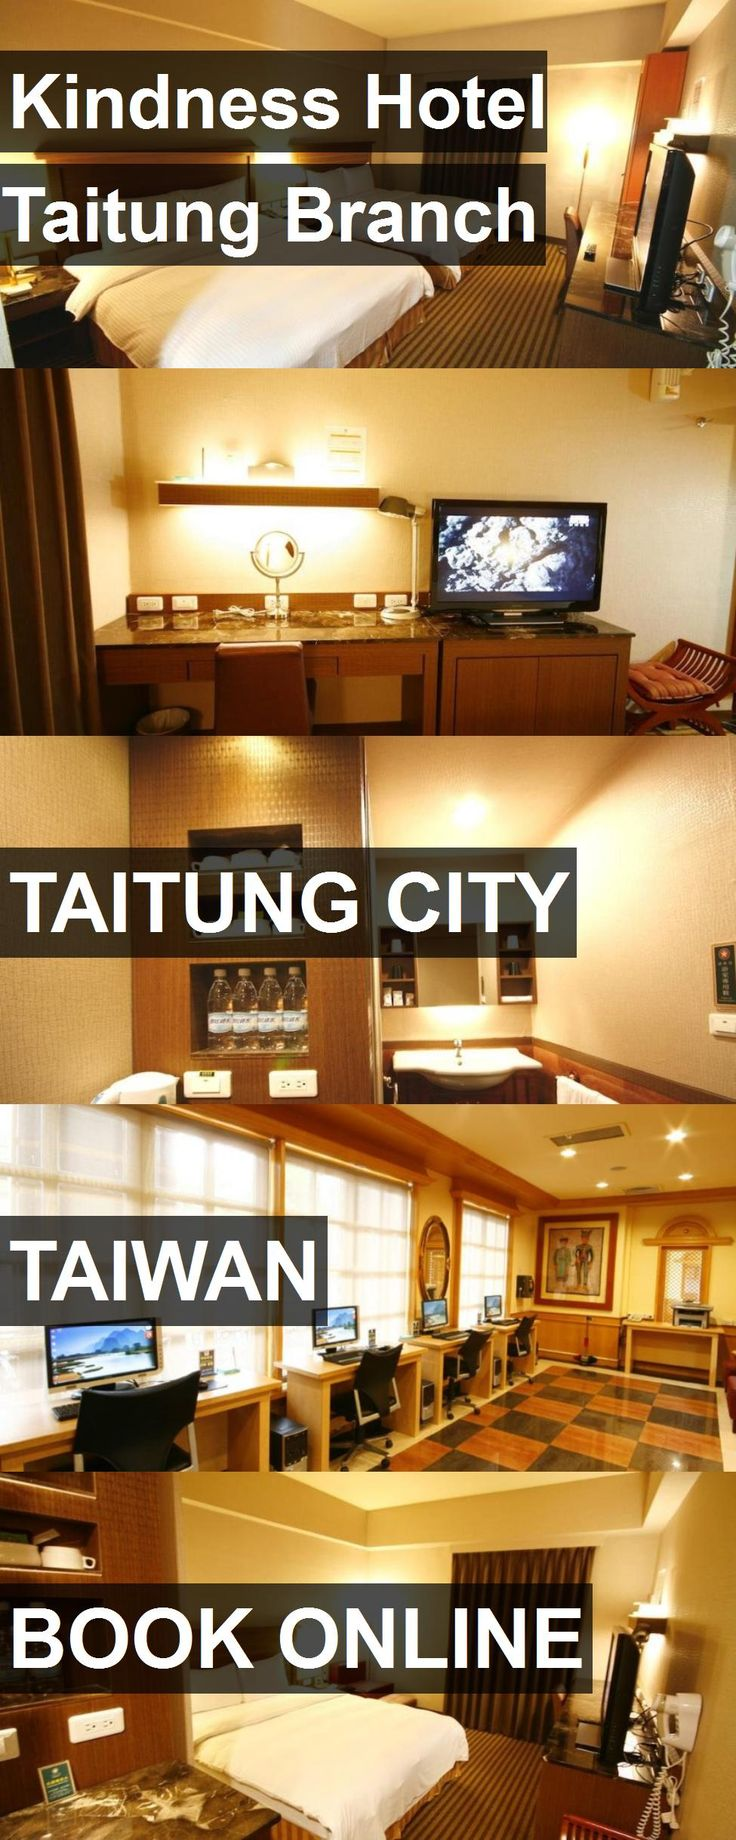 Hotel Kindness Hotel Taitung Branch in Taitung City, Taiwan. For more information, photos, reviews and best prices please follow the link. #Taiwan #TaitungCity #KindnessHotelTaitungBranch #hotel #travel #vacation